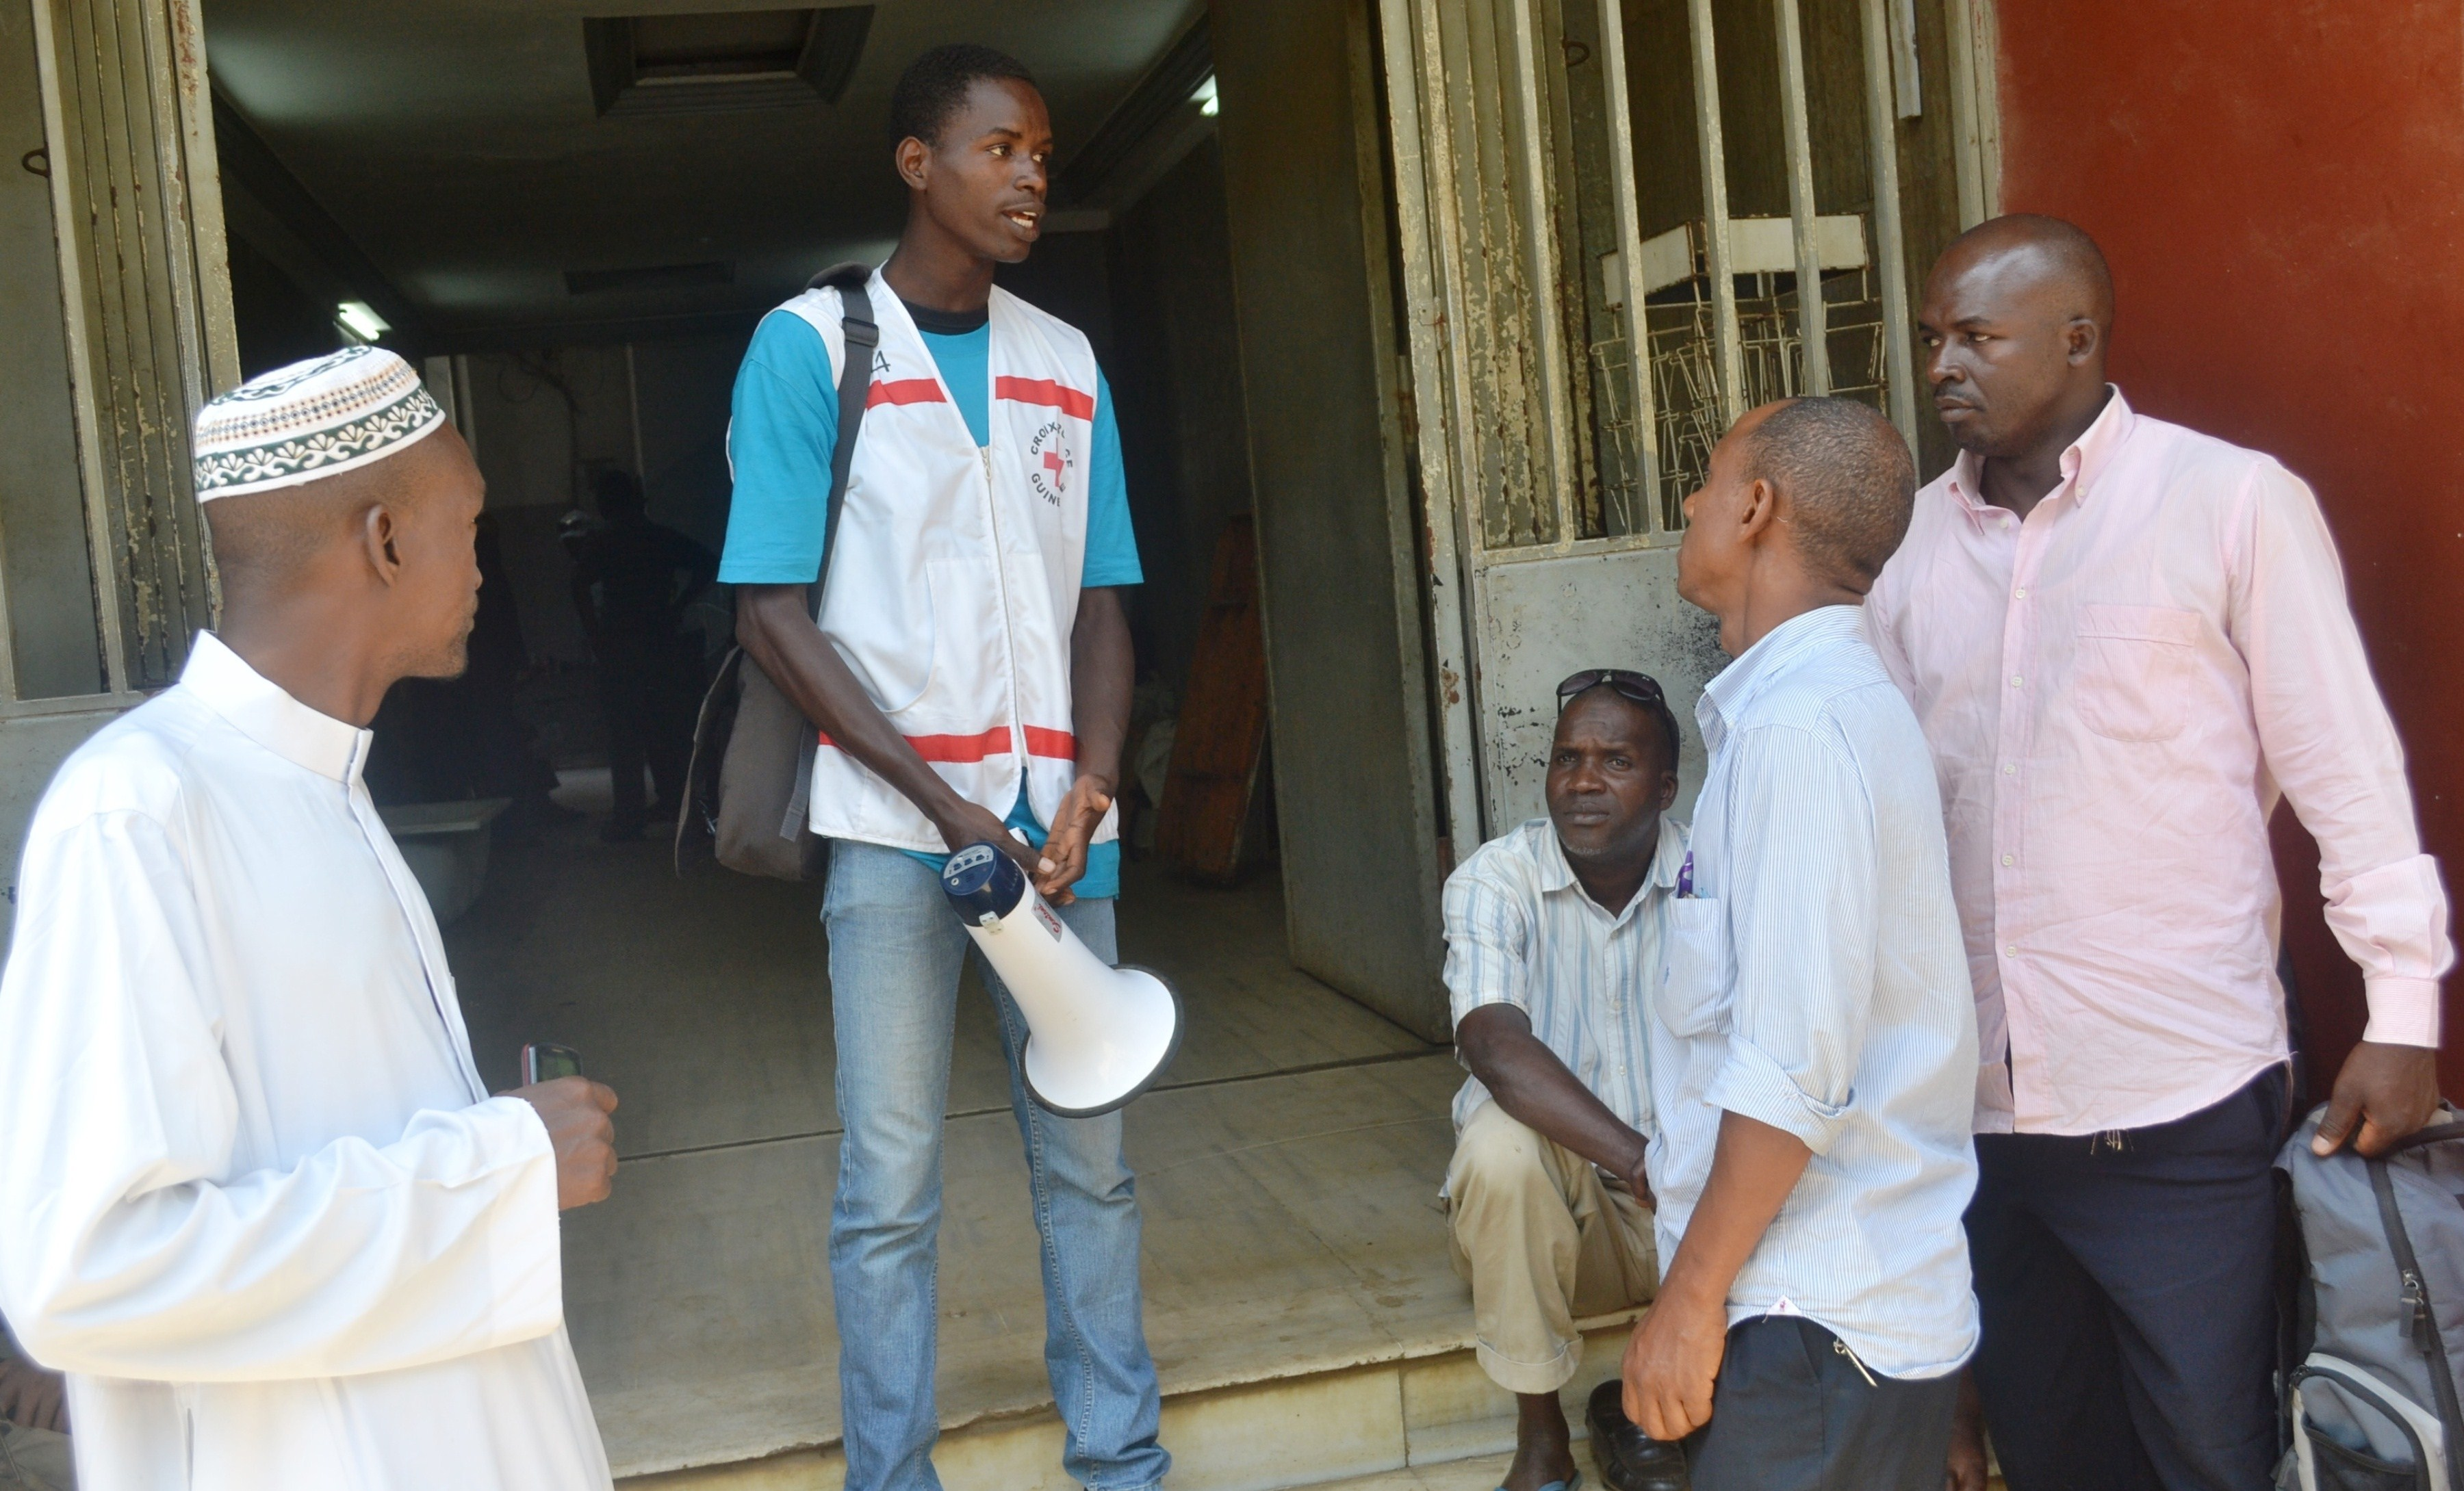 Members of the Red Cross provide information on Ebola to residents in Conakry, Guinea on April 11, 2014 at the start of the largest Ebola outbreak in history